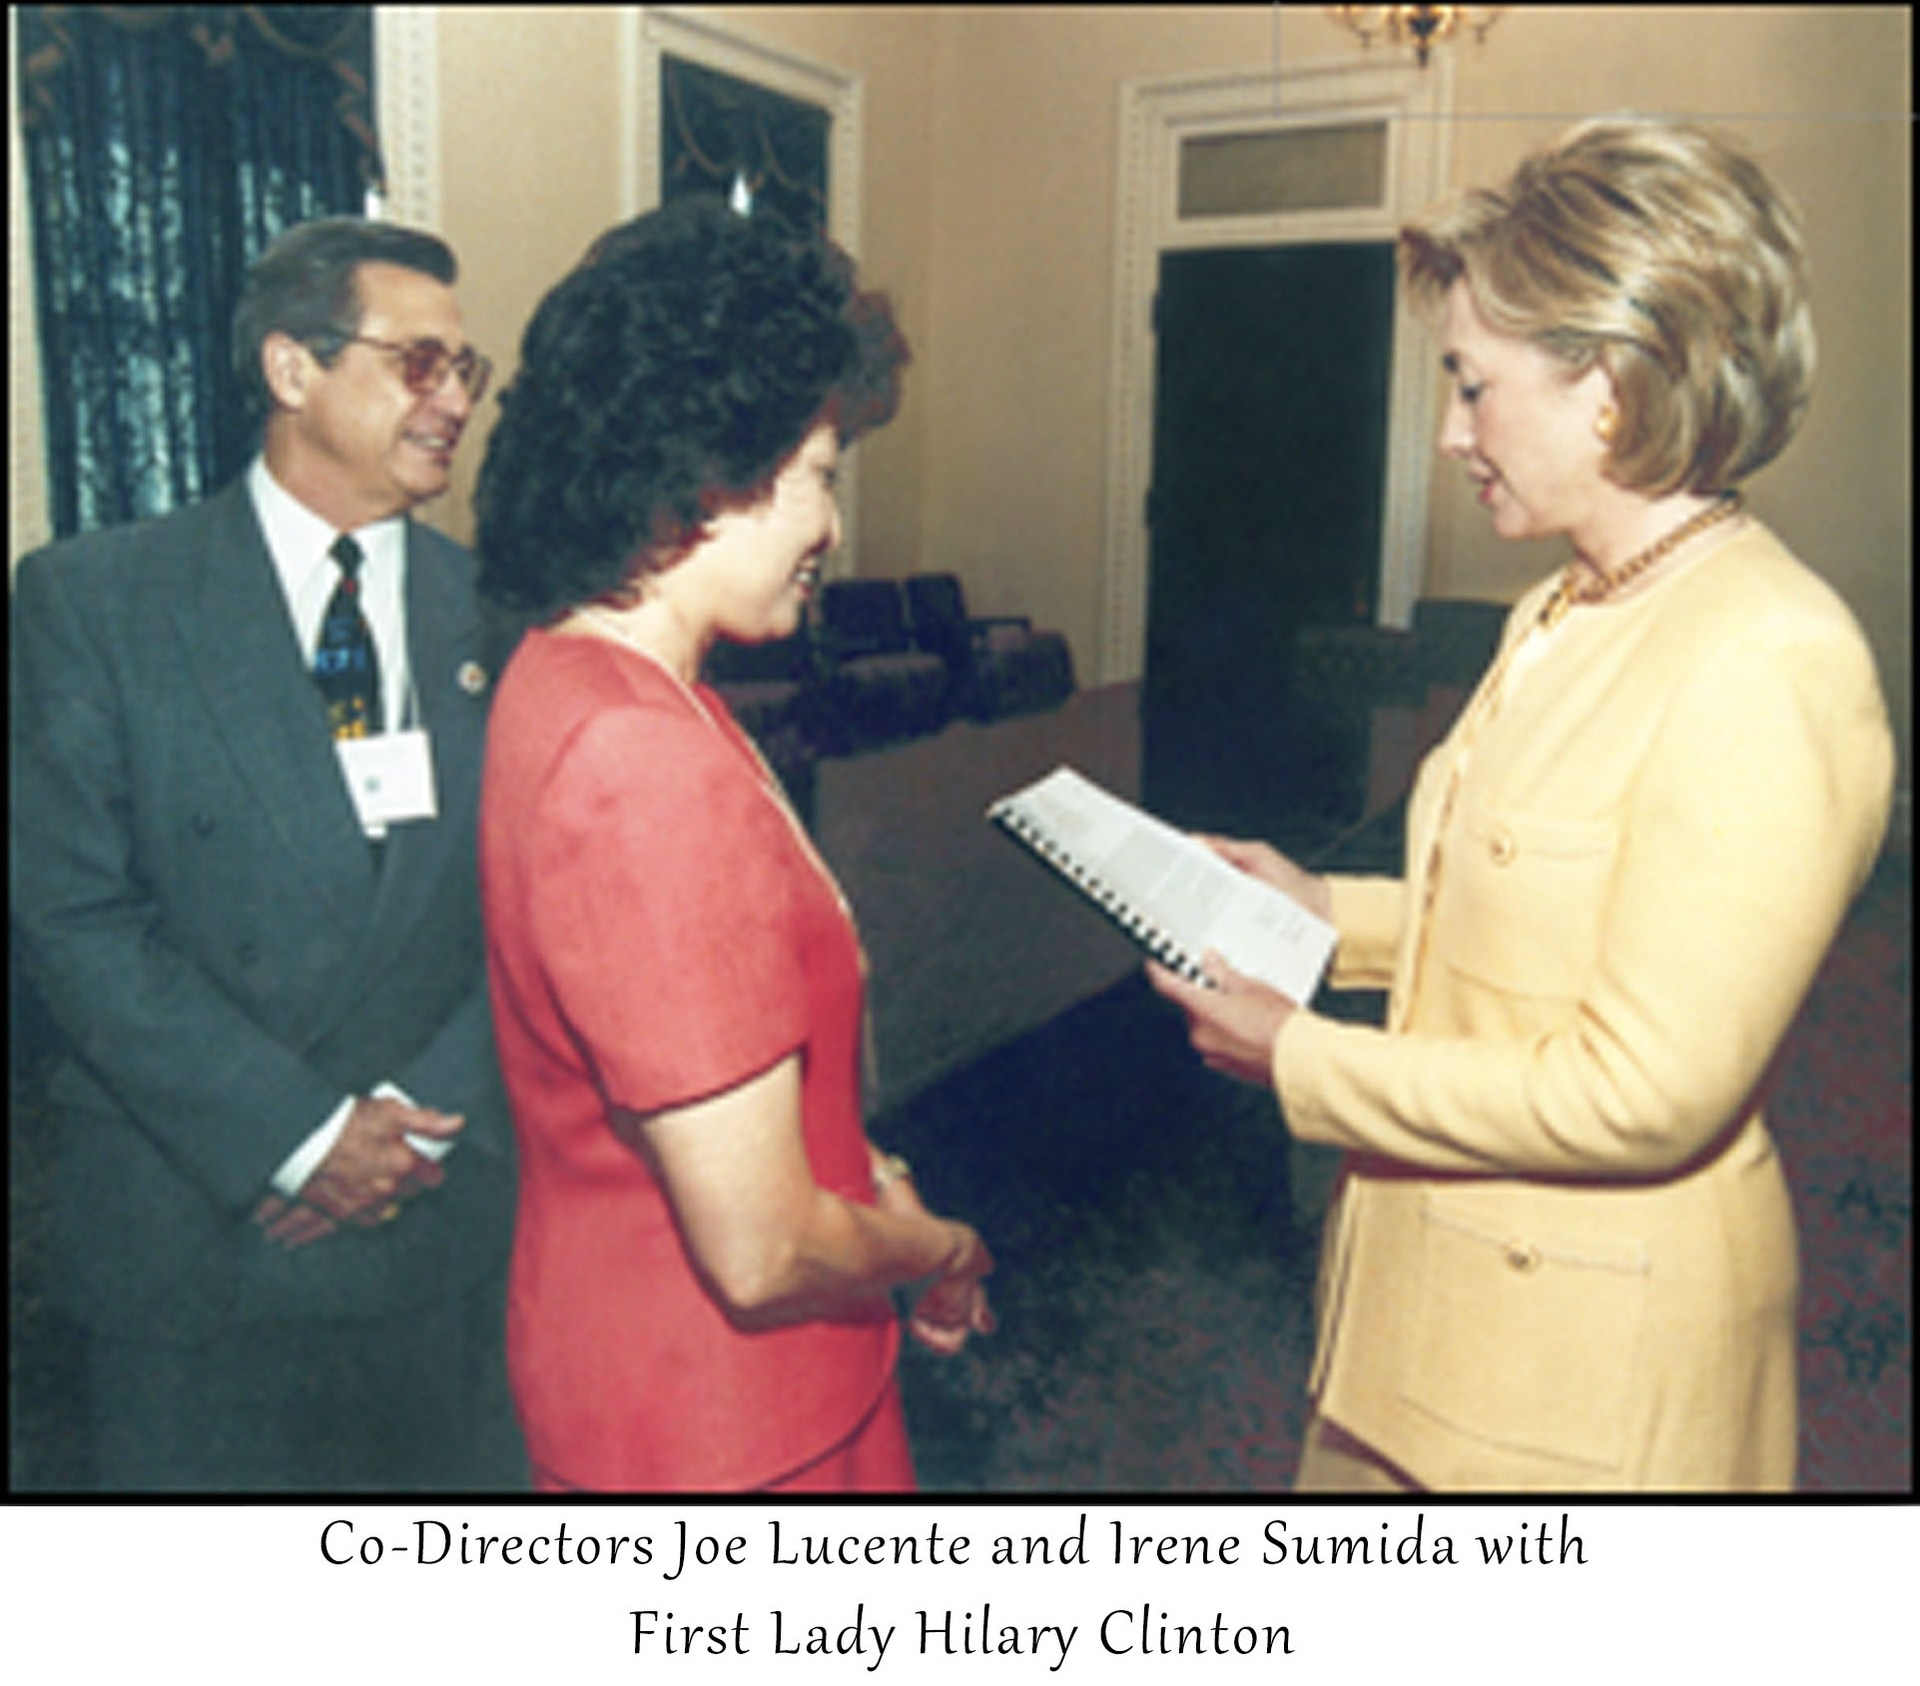 Co-Directors Joe Lucente and Irene Sumida with First Lady Hilary Clinton